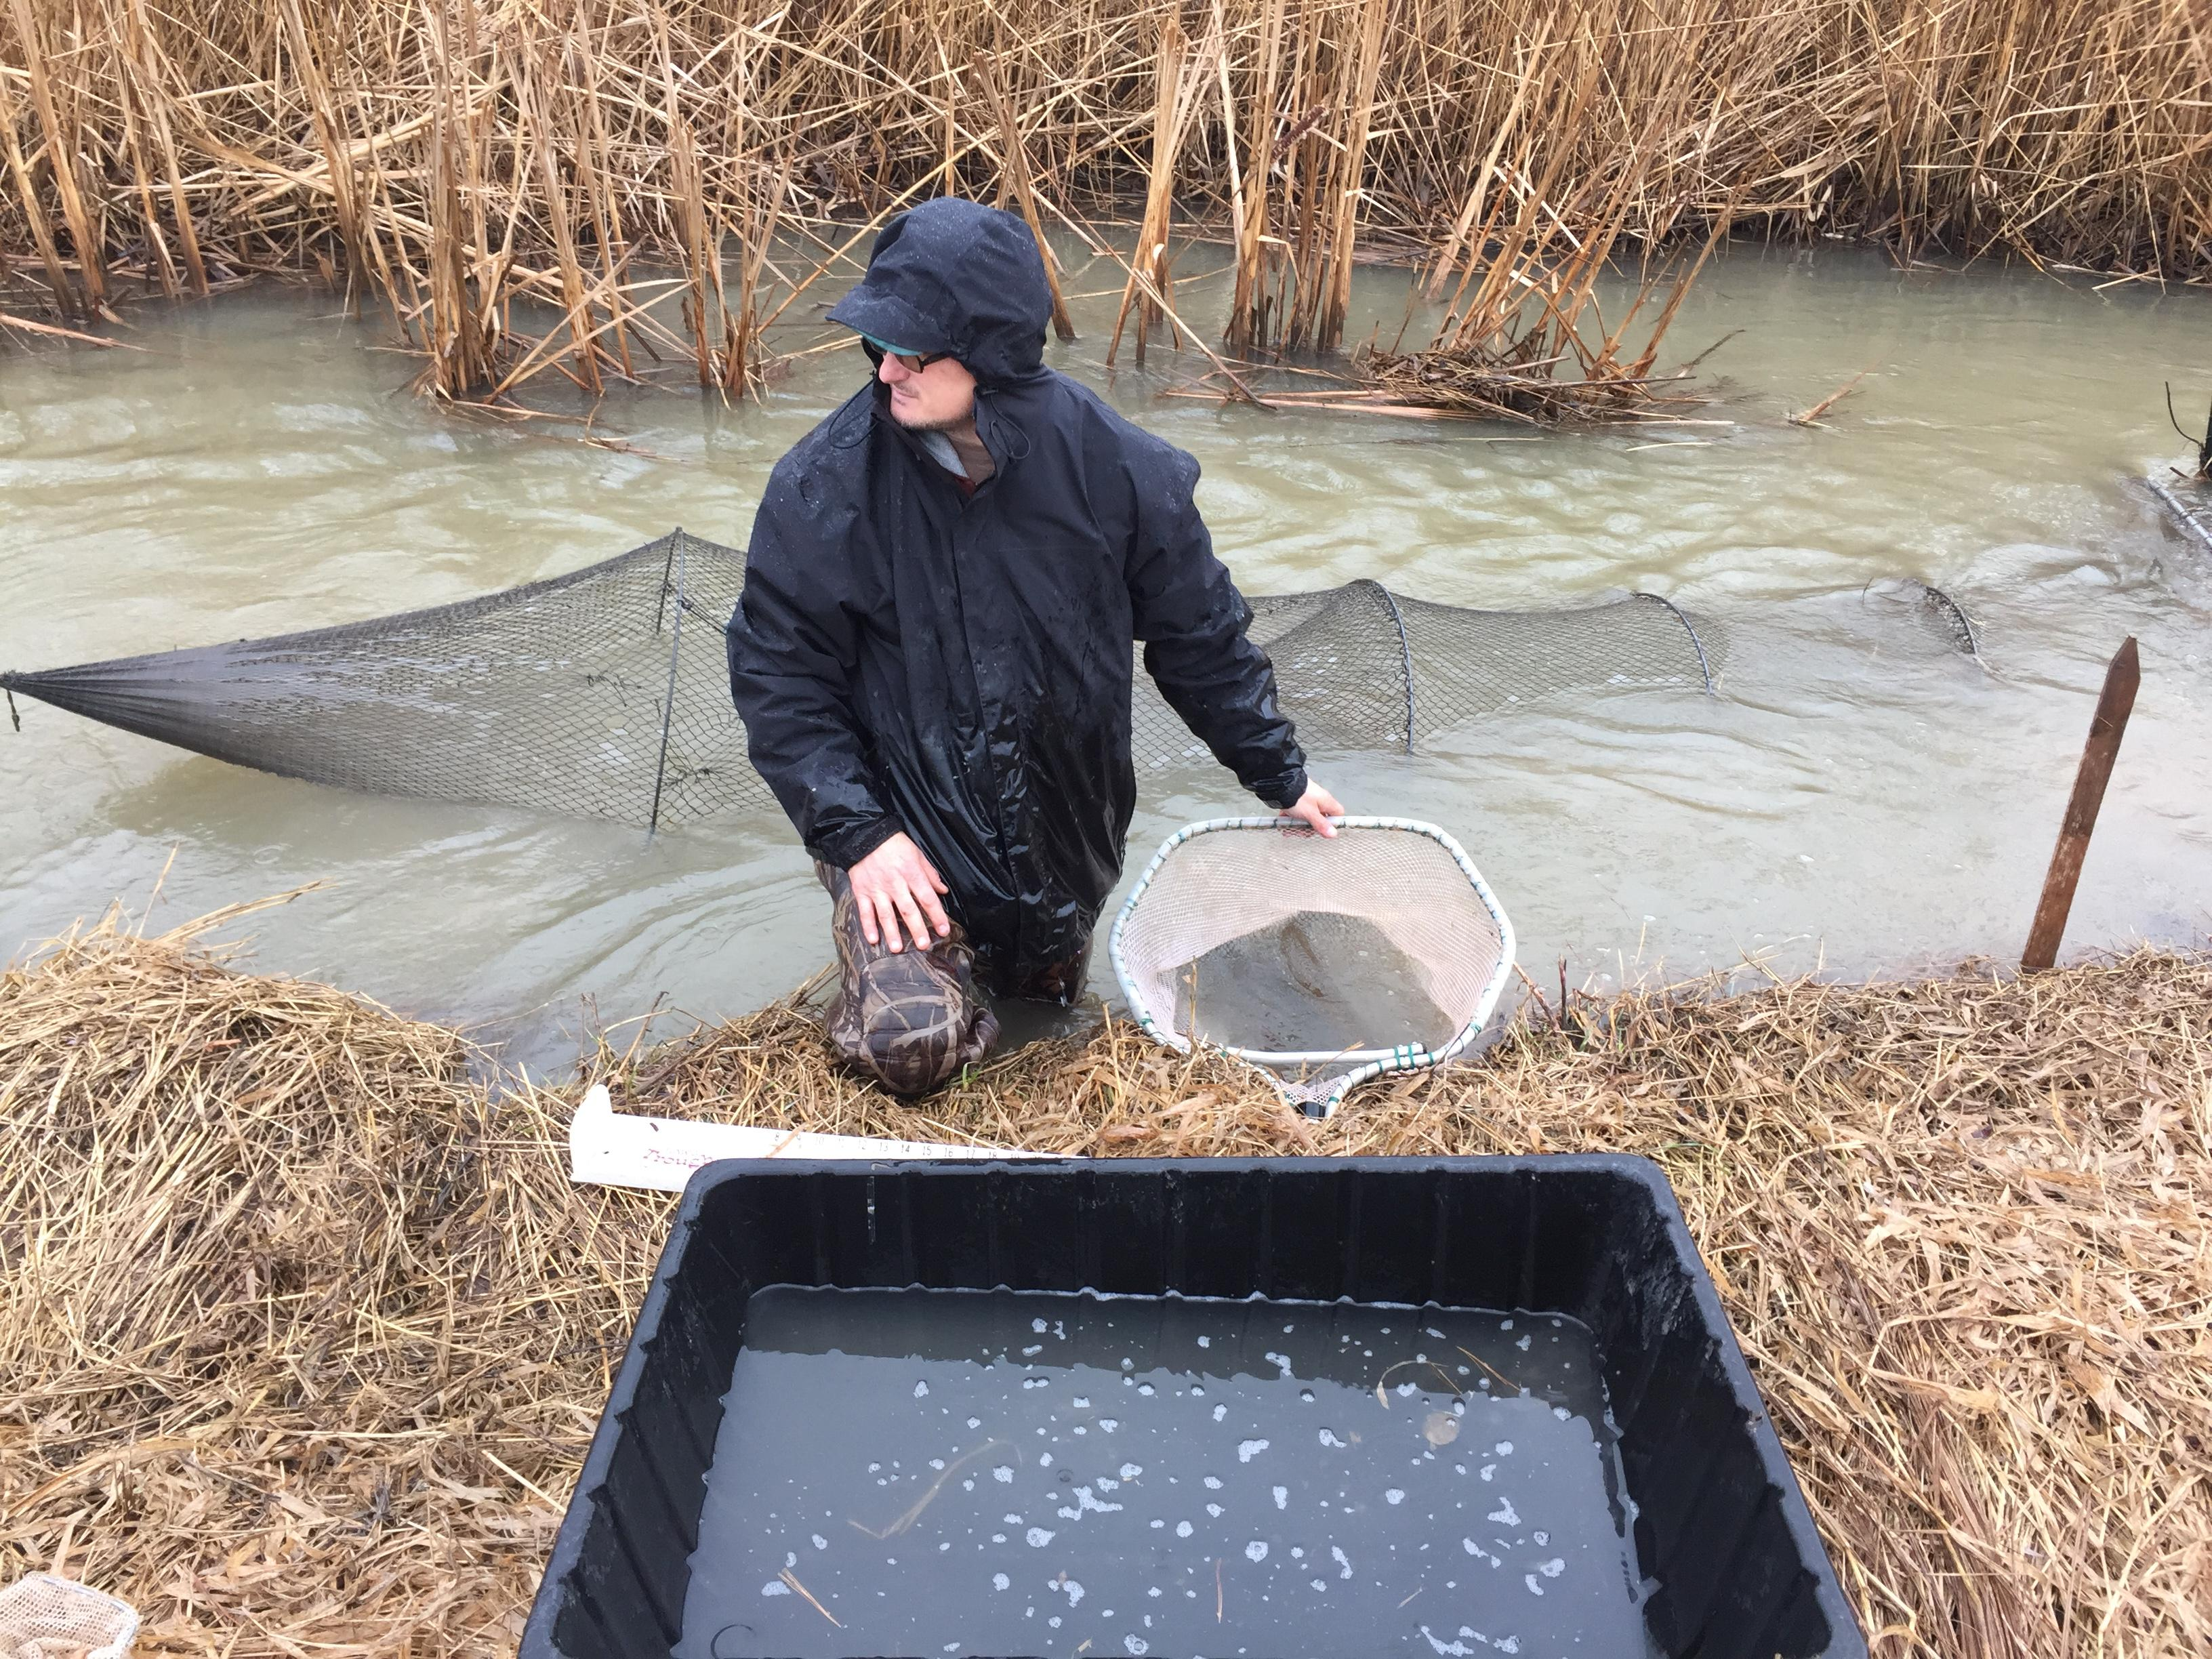 David Wetenkamp checks net used to trap Northern Pike in Willow Creek in Bellevue, April 4, 2017 (WLUK/Eric Peterson)